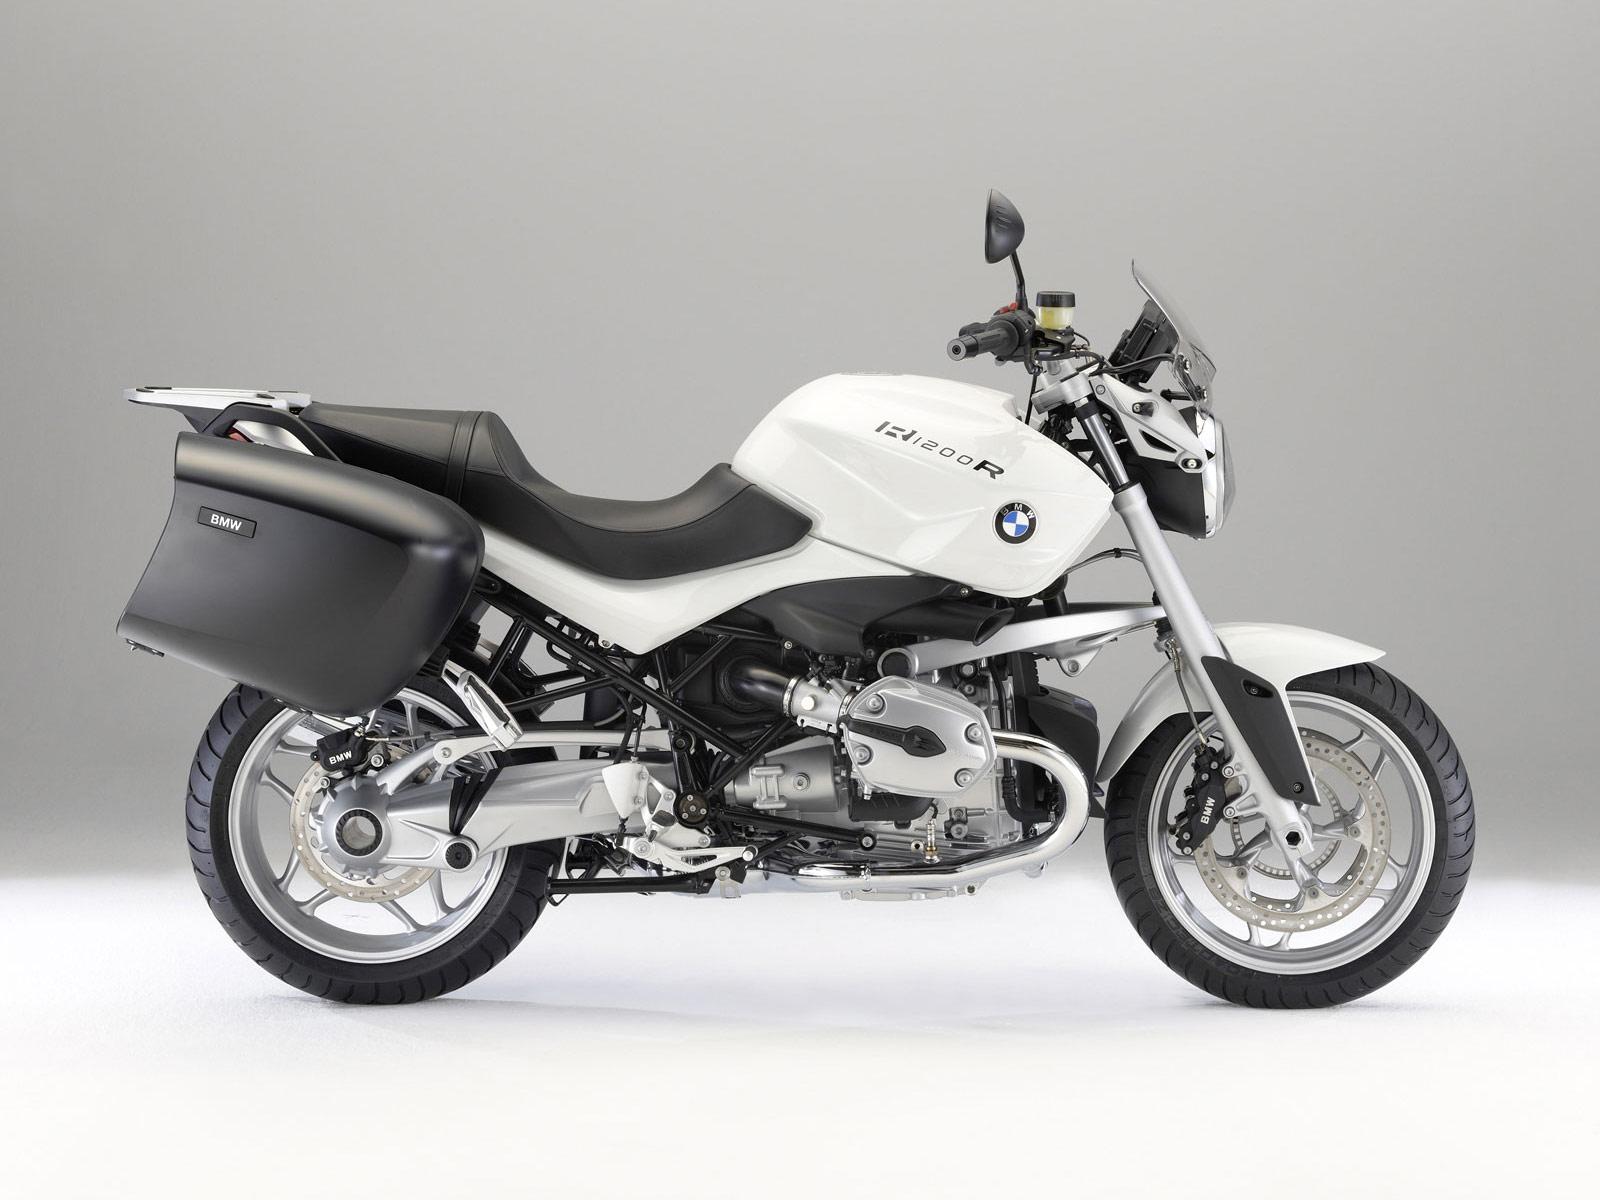 2010 bmw r1200r touring edition motorcycle wallpaper. Black Bedroom Furniture Sets. Home Design Ideas